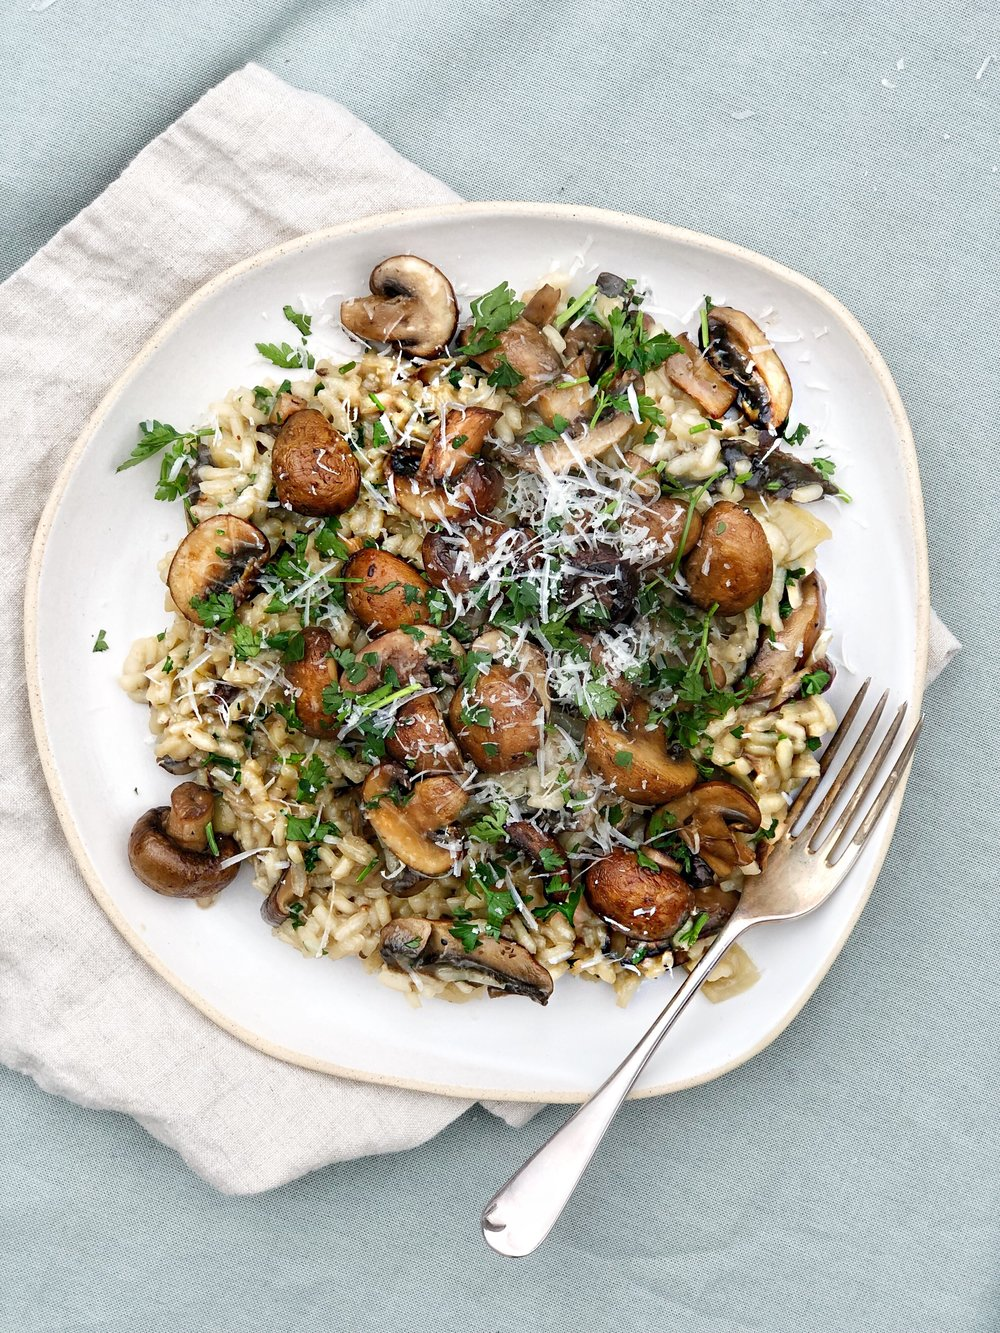 Faff free oven baked mushroom risotto by Margie Nomura